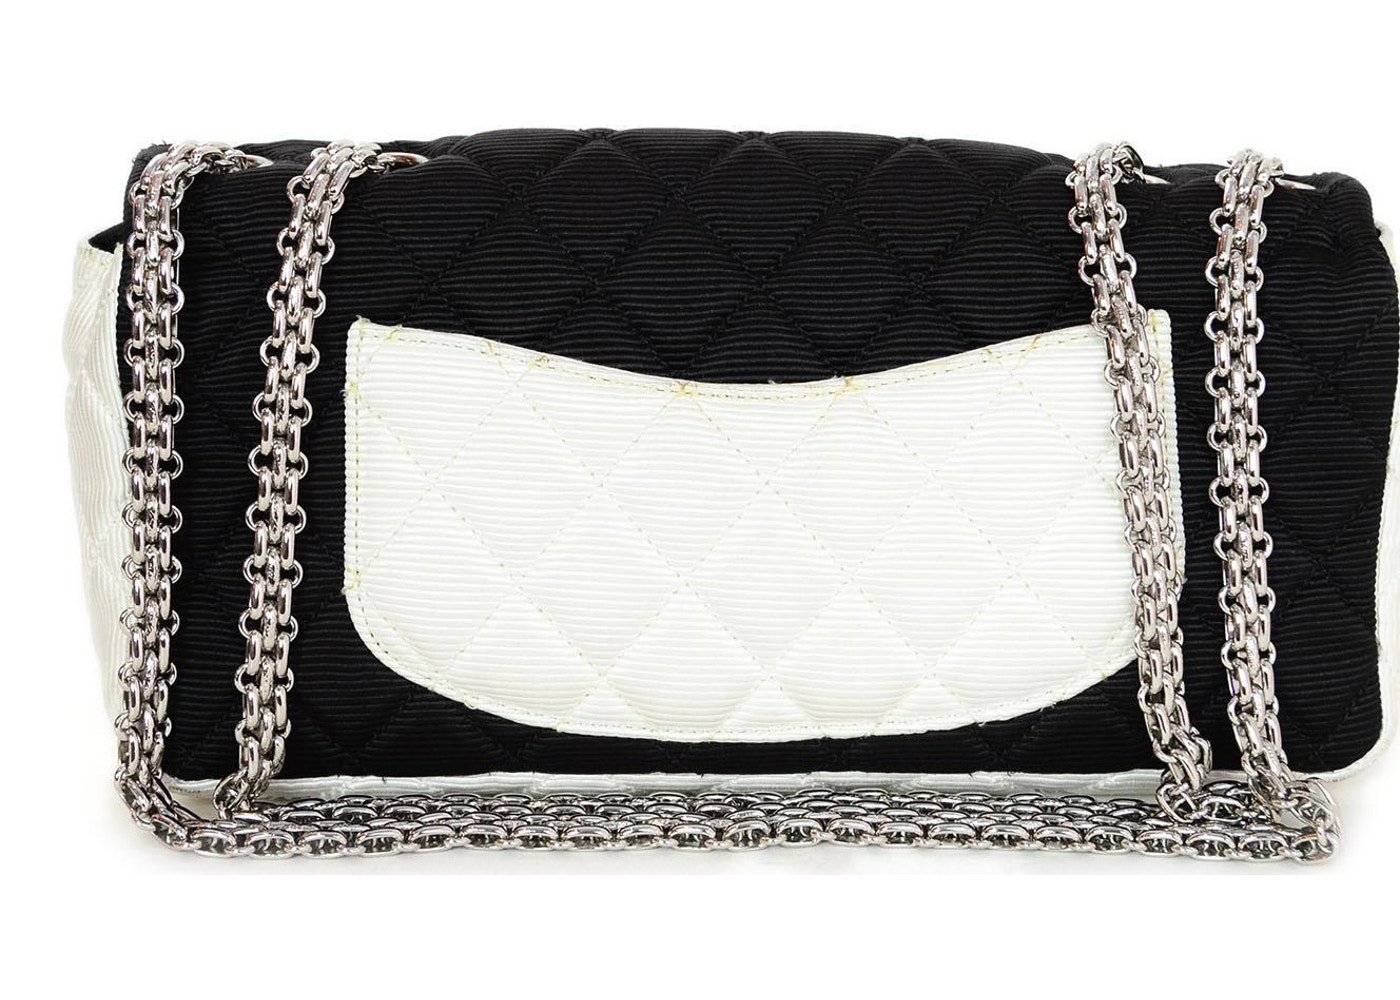 38921741aa2c Chanel Reissue East West Flap Bag Quilted Grosgrain Black/White